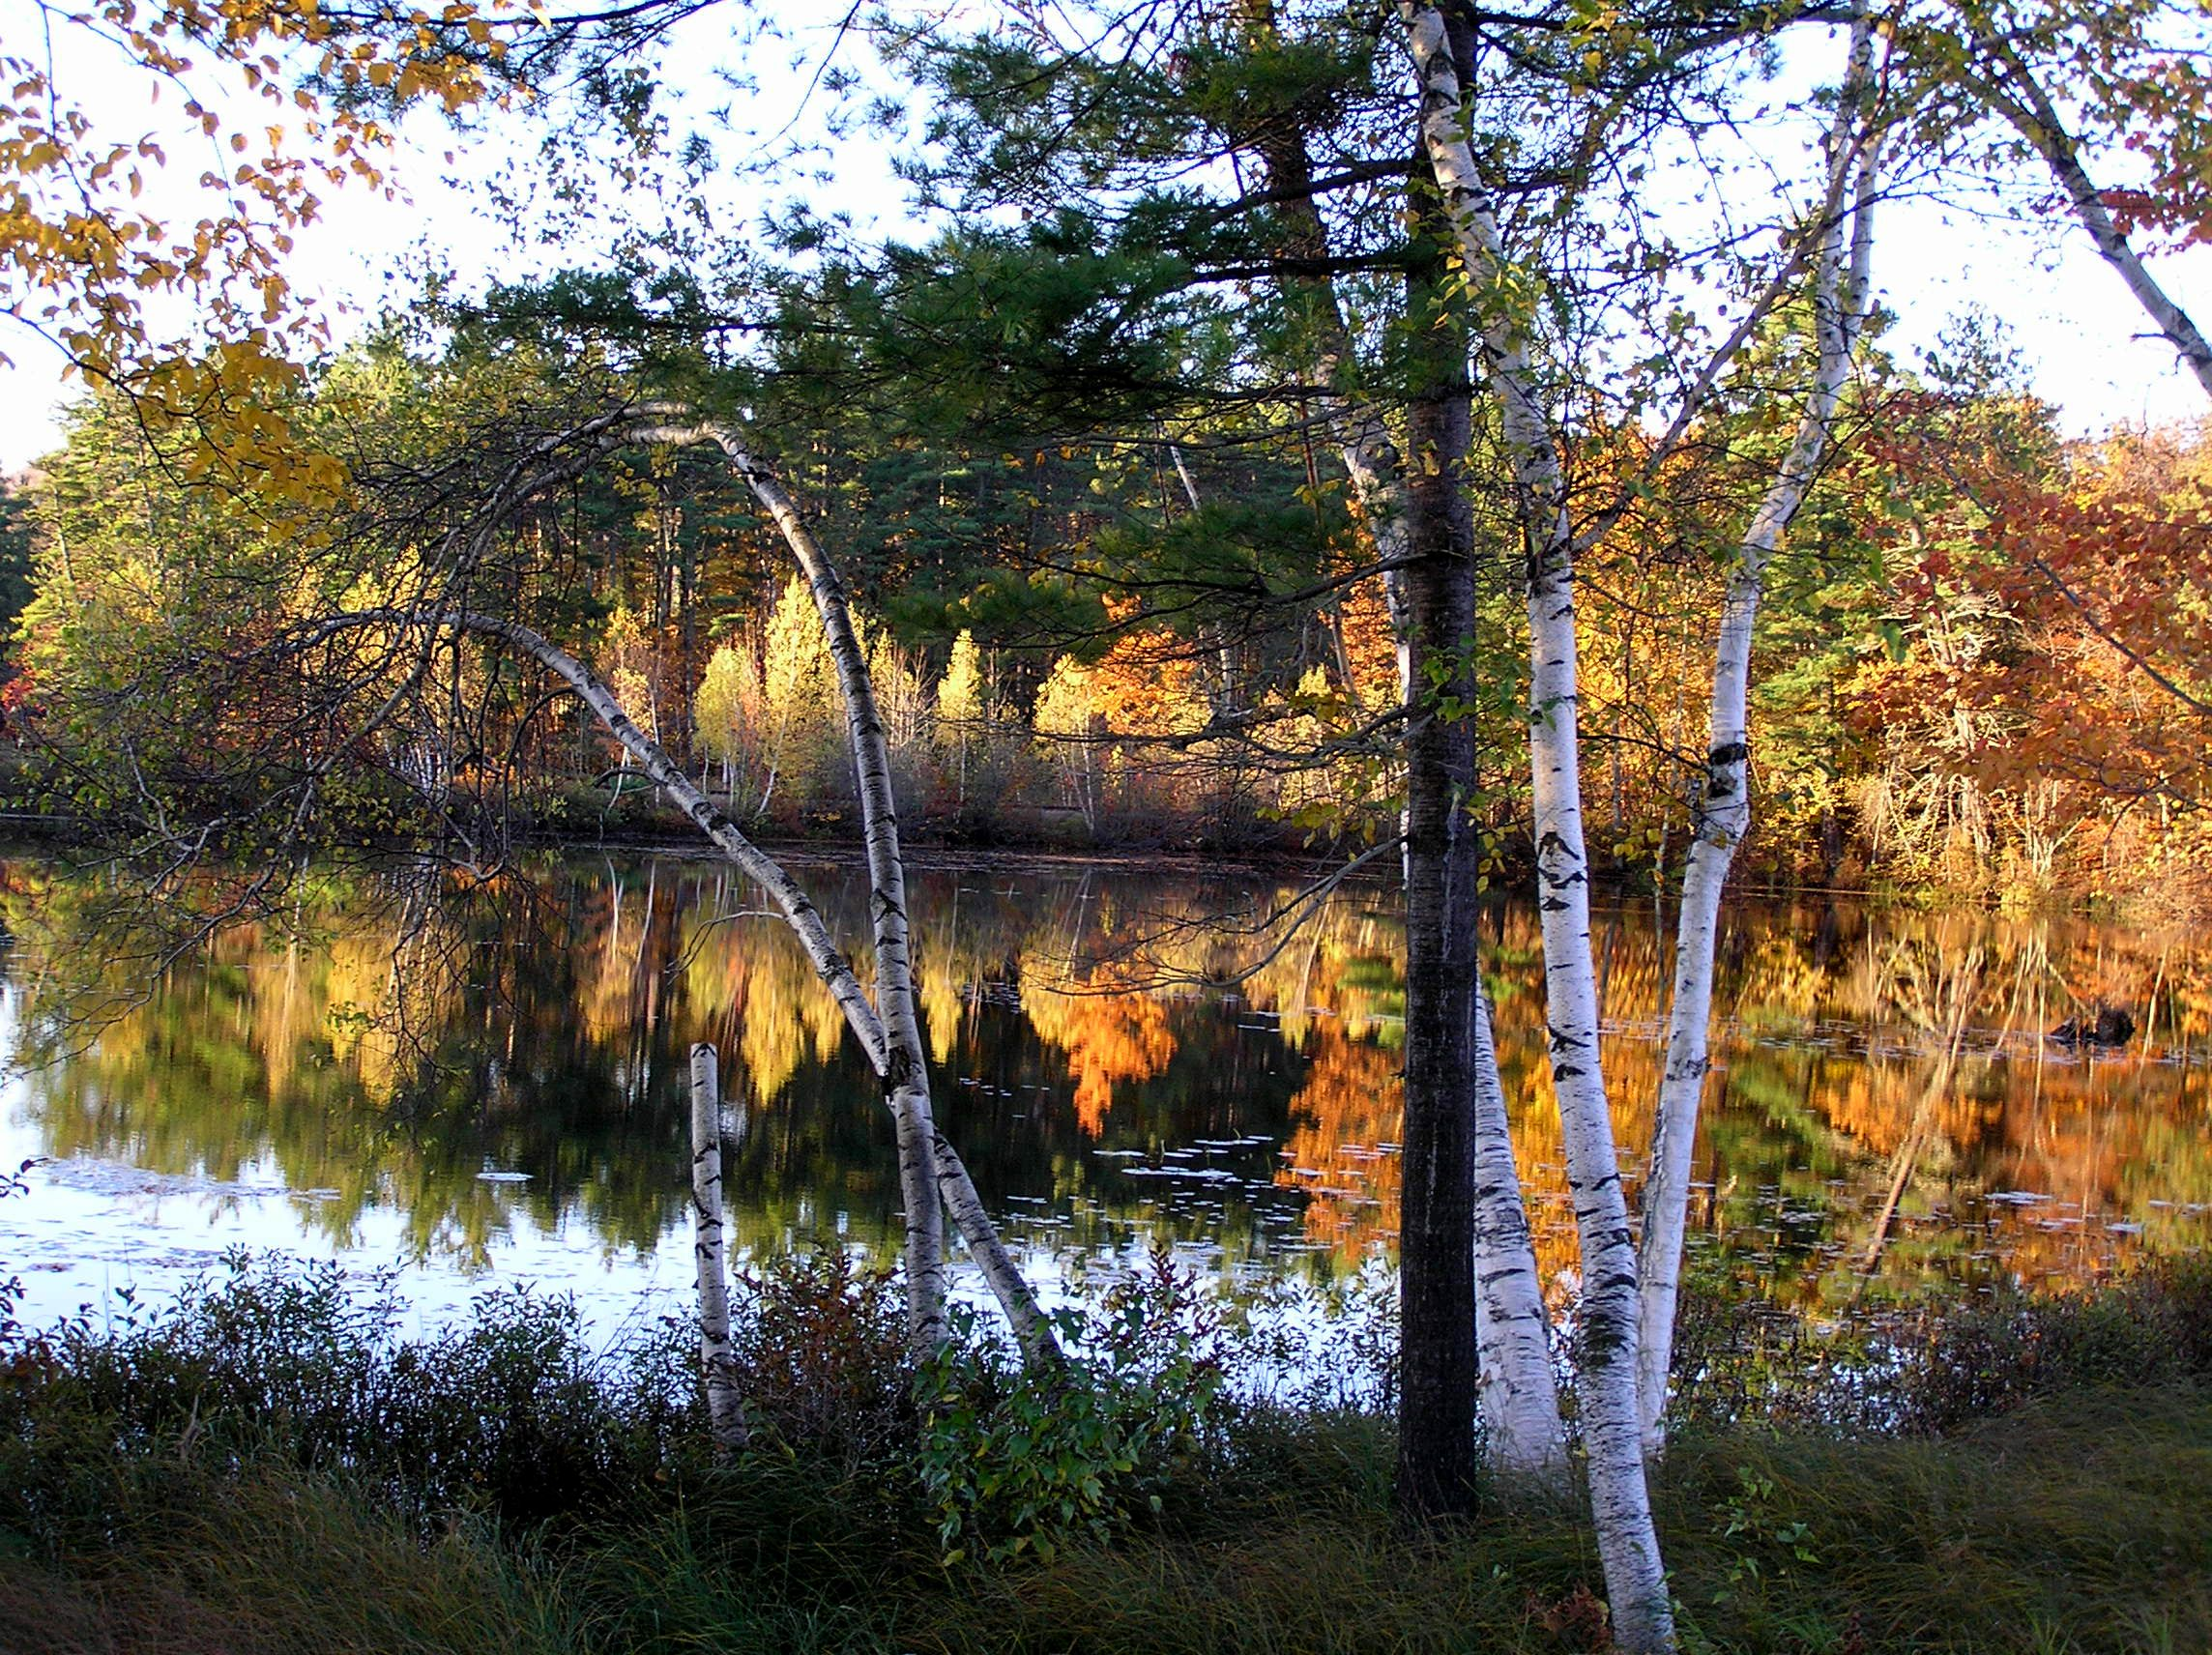 Fall in Maine - photo copyrighted by H. Joie Crockett